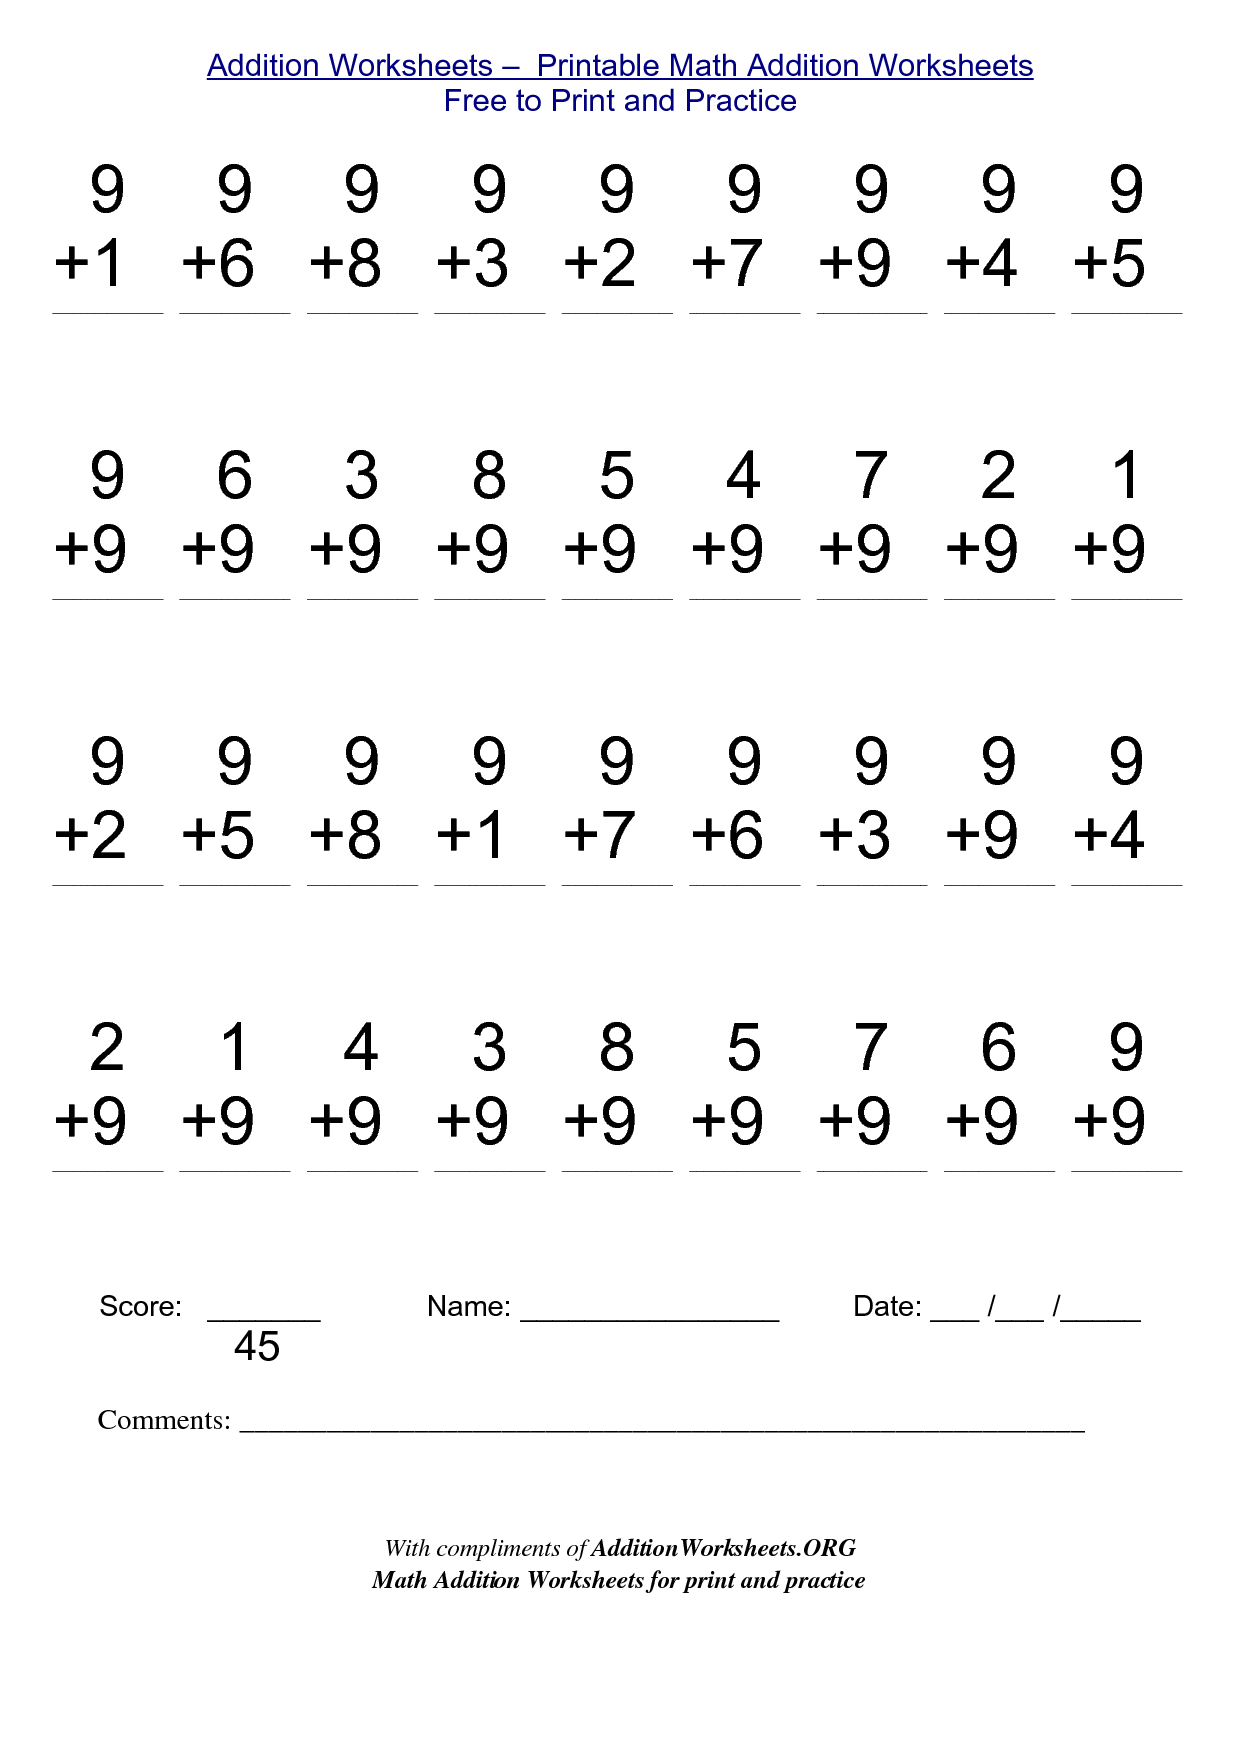 Worksheets 2nd Grade Math Printable Worksheets math worksheets for free to print alot com me pinterest addition printable print